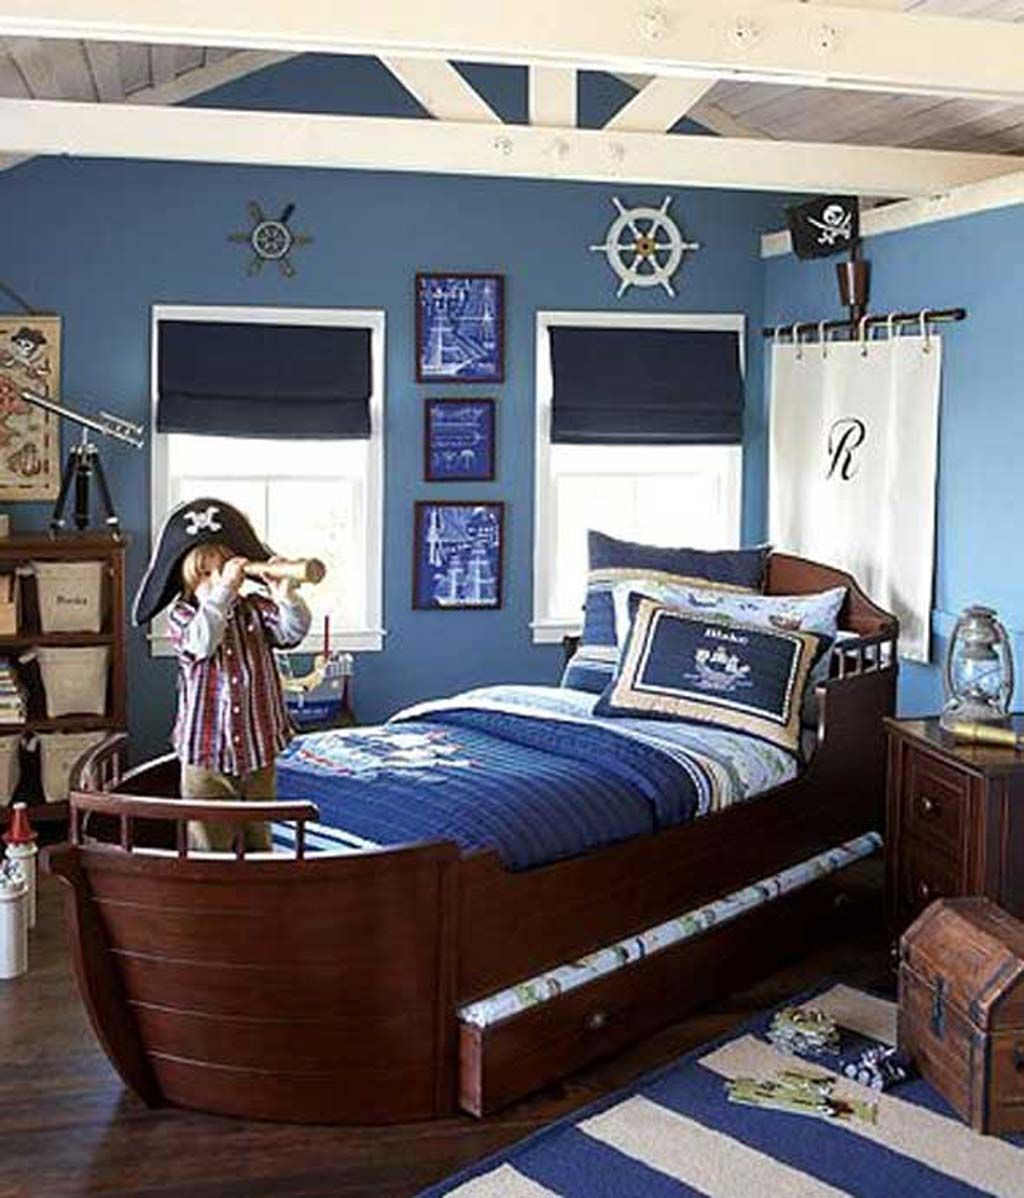 pirate bedroom. Pirate Bedroom Ideas 3  Photo Close up View